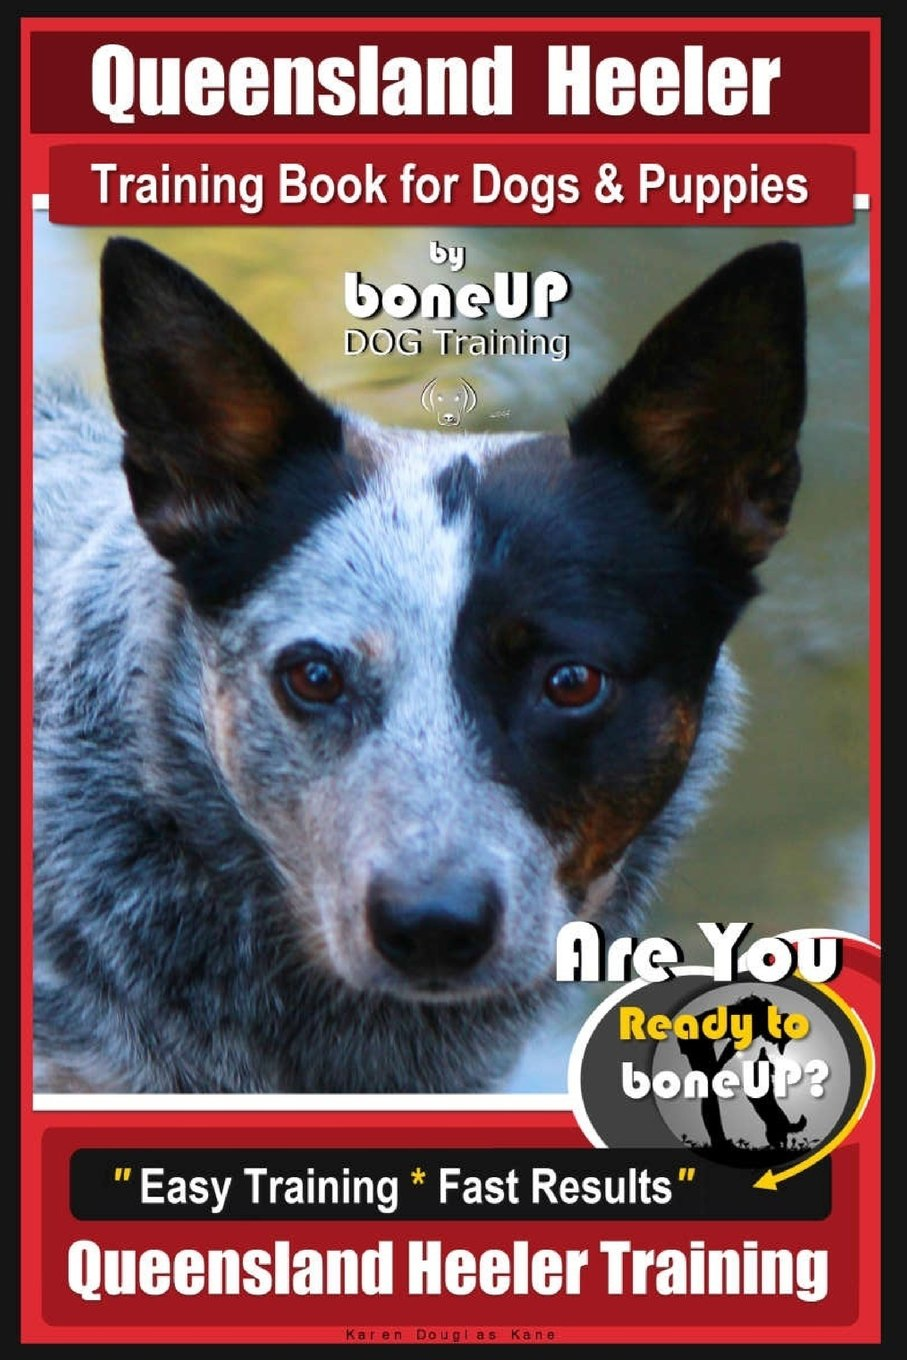 Download Queensland Heeler Training Book for Dogs & Puppies by Bone Up Dog Training.: Are You Ready to Bone Up? Easy Training * Fast Results Queensland Heeler Training pdf